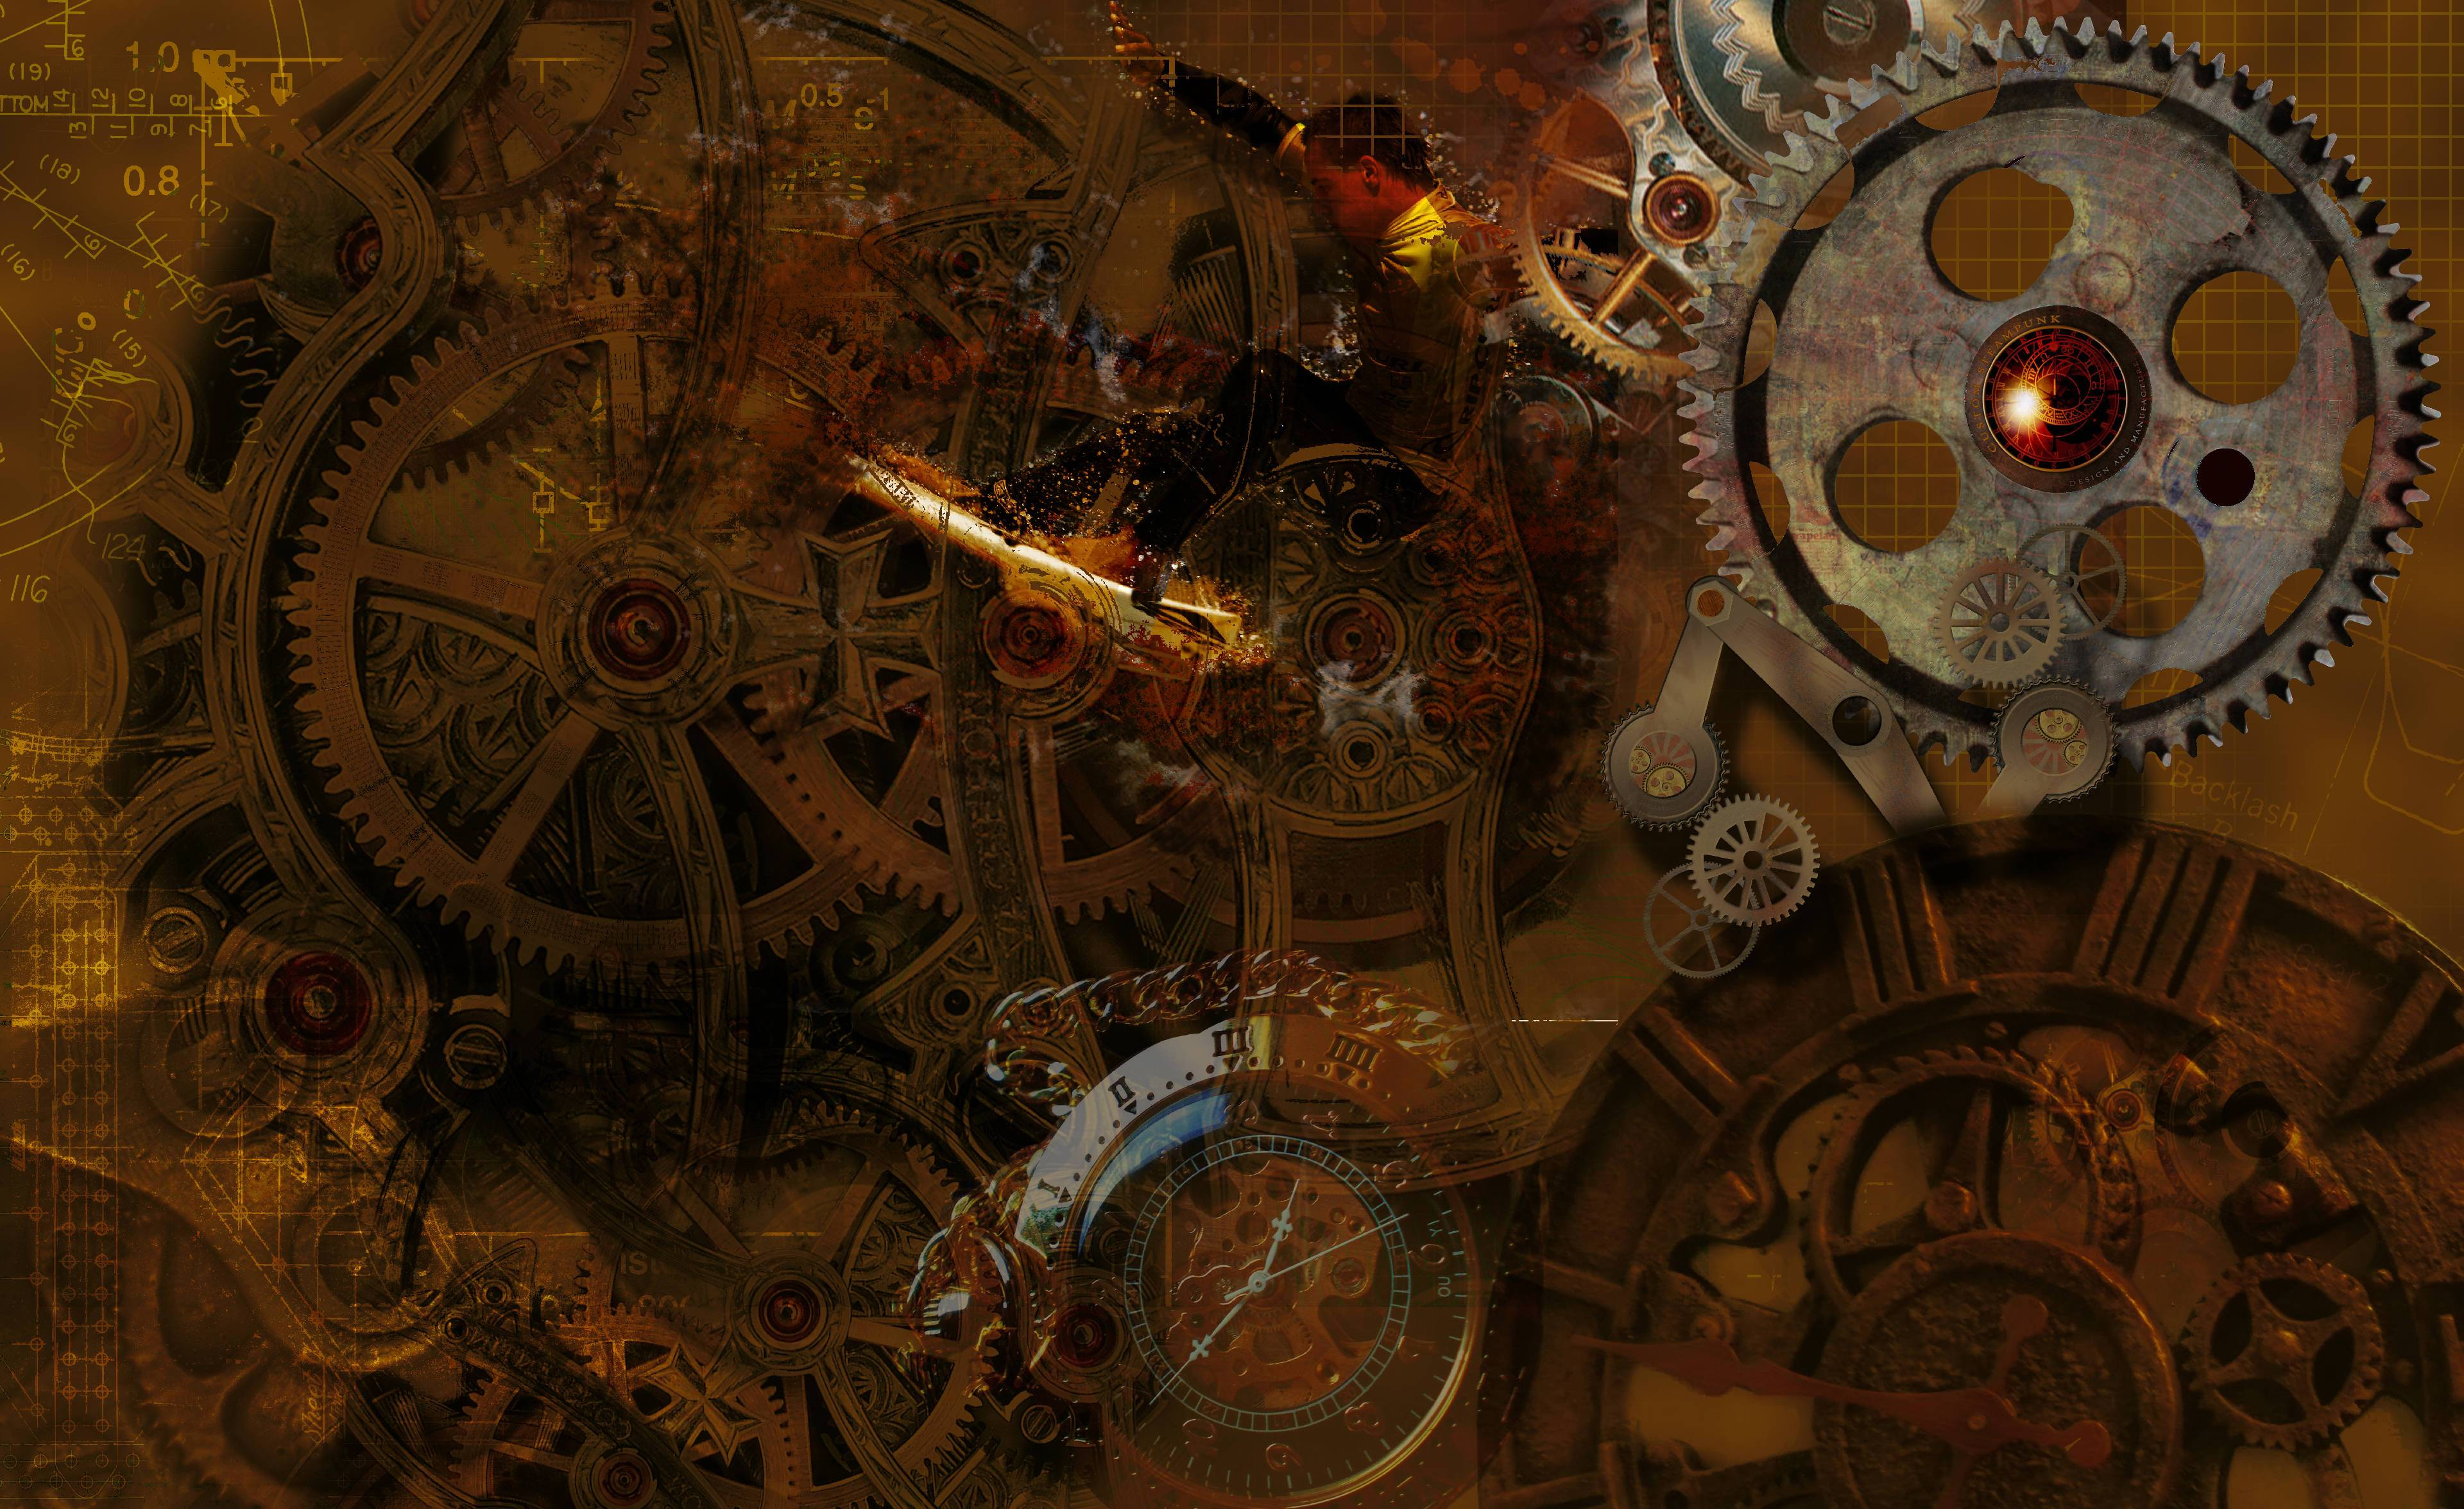 steampunk cogs abstract fantasy - photo #37